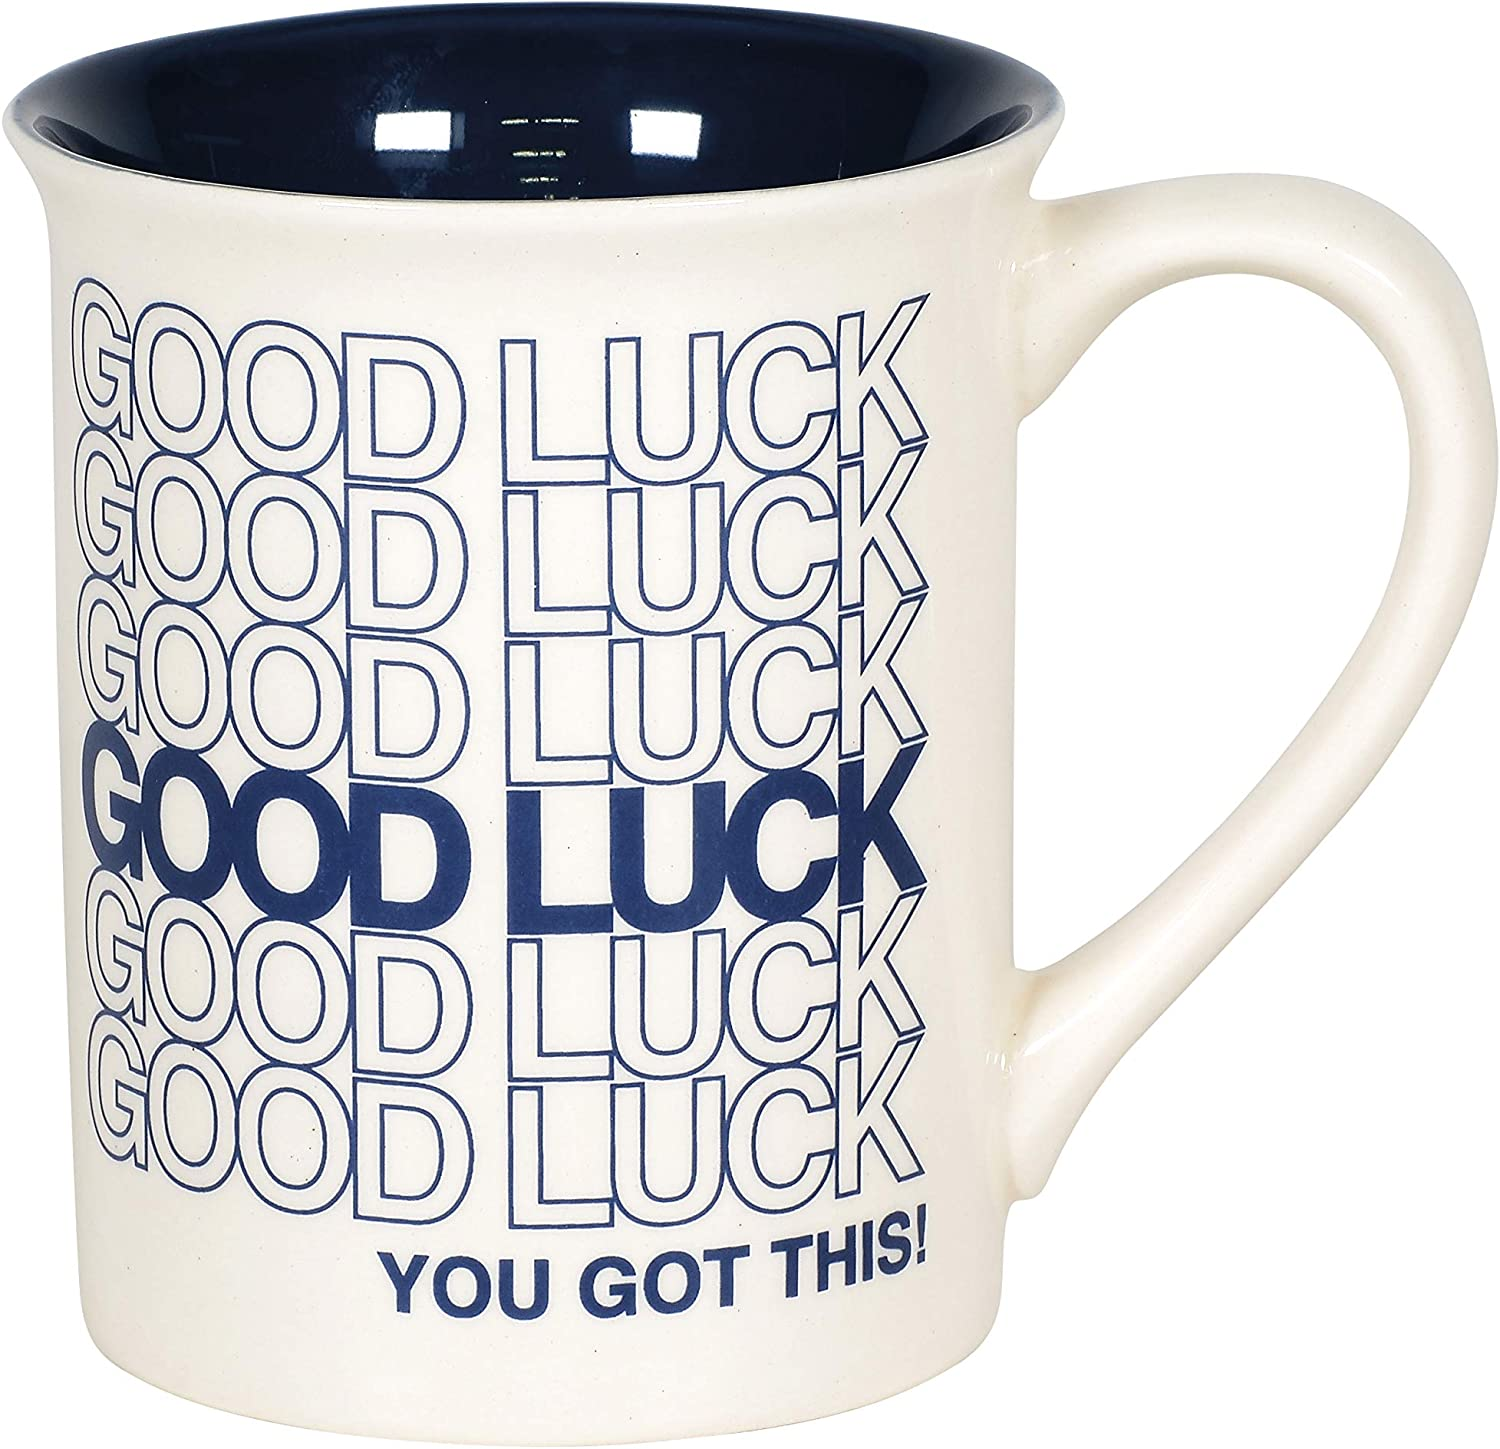 Enesco 6006214 Our Name is Mud Good Luck Repeating Type Coffee Mug, 16 Ounce, Dark Blue and White